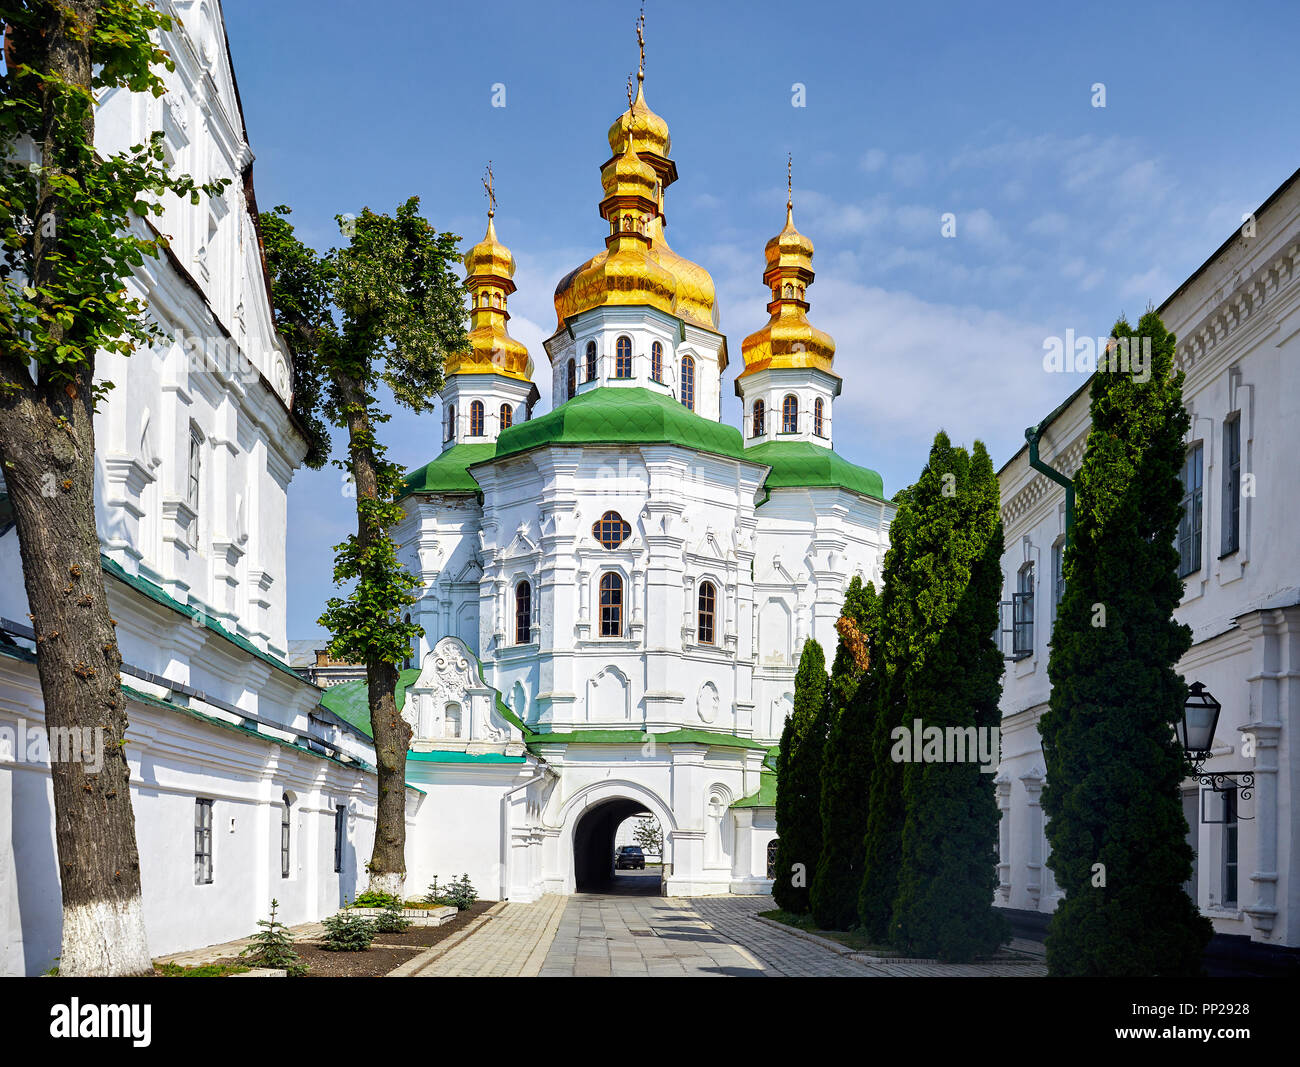 Church with golden domes at Kiev Pechersk Lavra Christian complex. Old historical architecture in Kiev, Ukraine - Stock Image